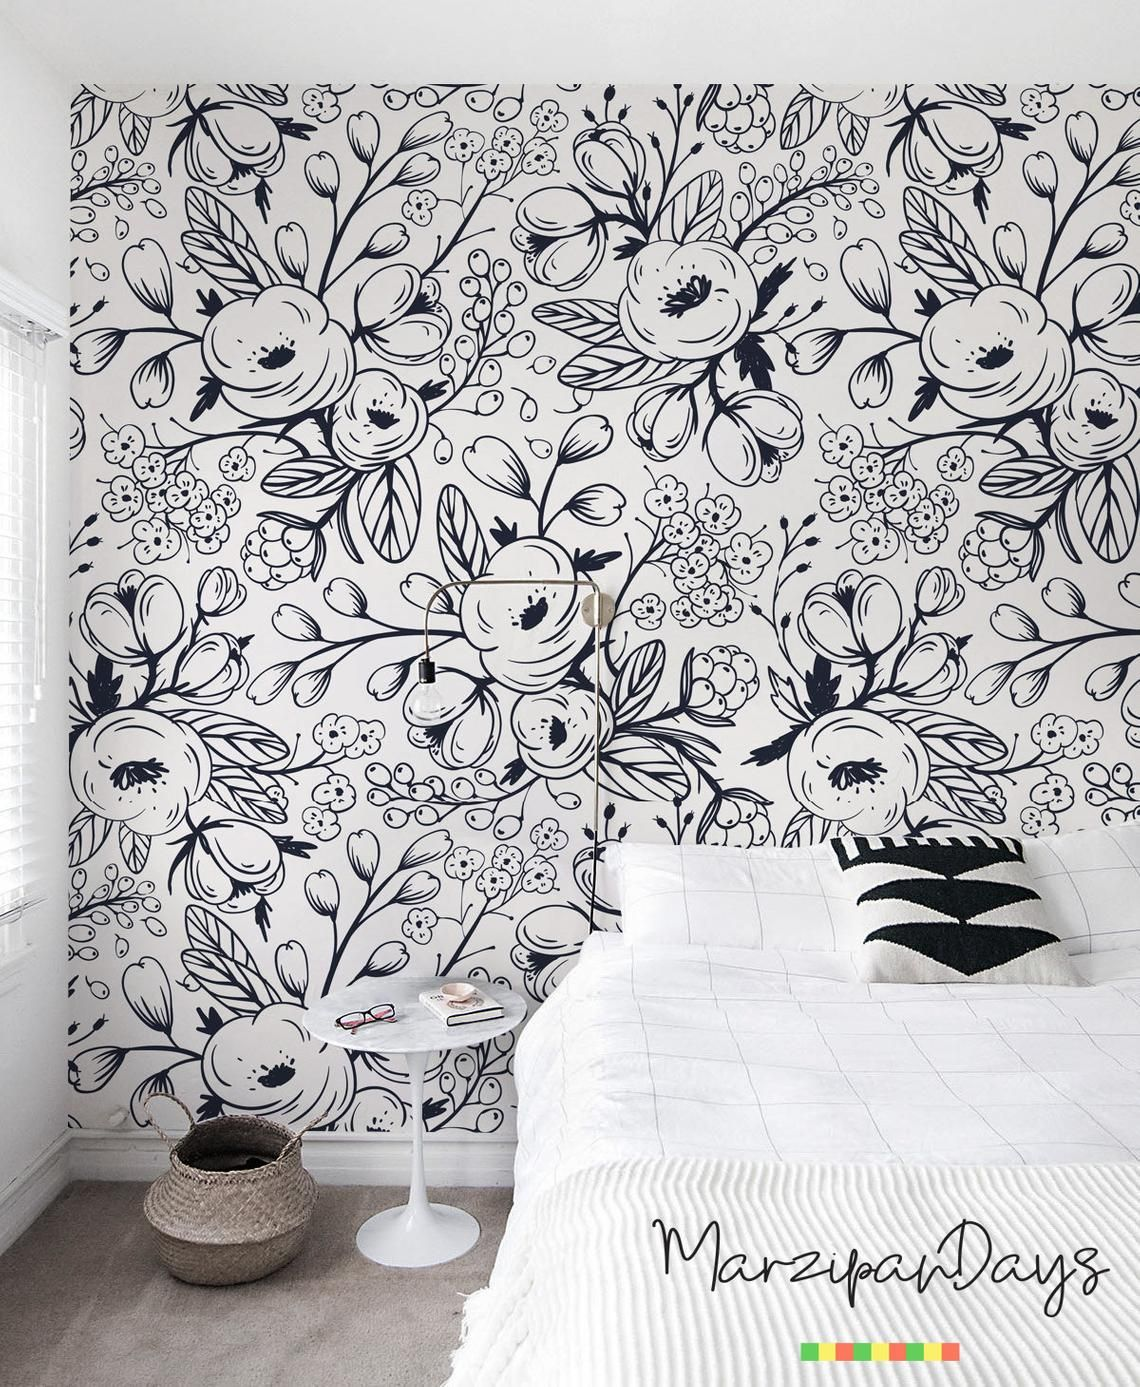 Black And White Wallpaper Nursery Wall Mural Floral Wallpaper Removable Wallpaper Children Wall Art Spinrg Meadow Doddle 6 Black And White Wallpaper White Wallpaper Nursery Wallpaper